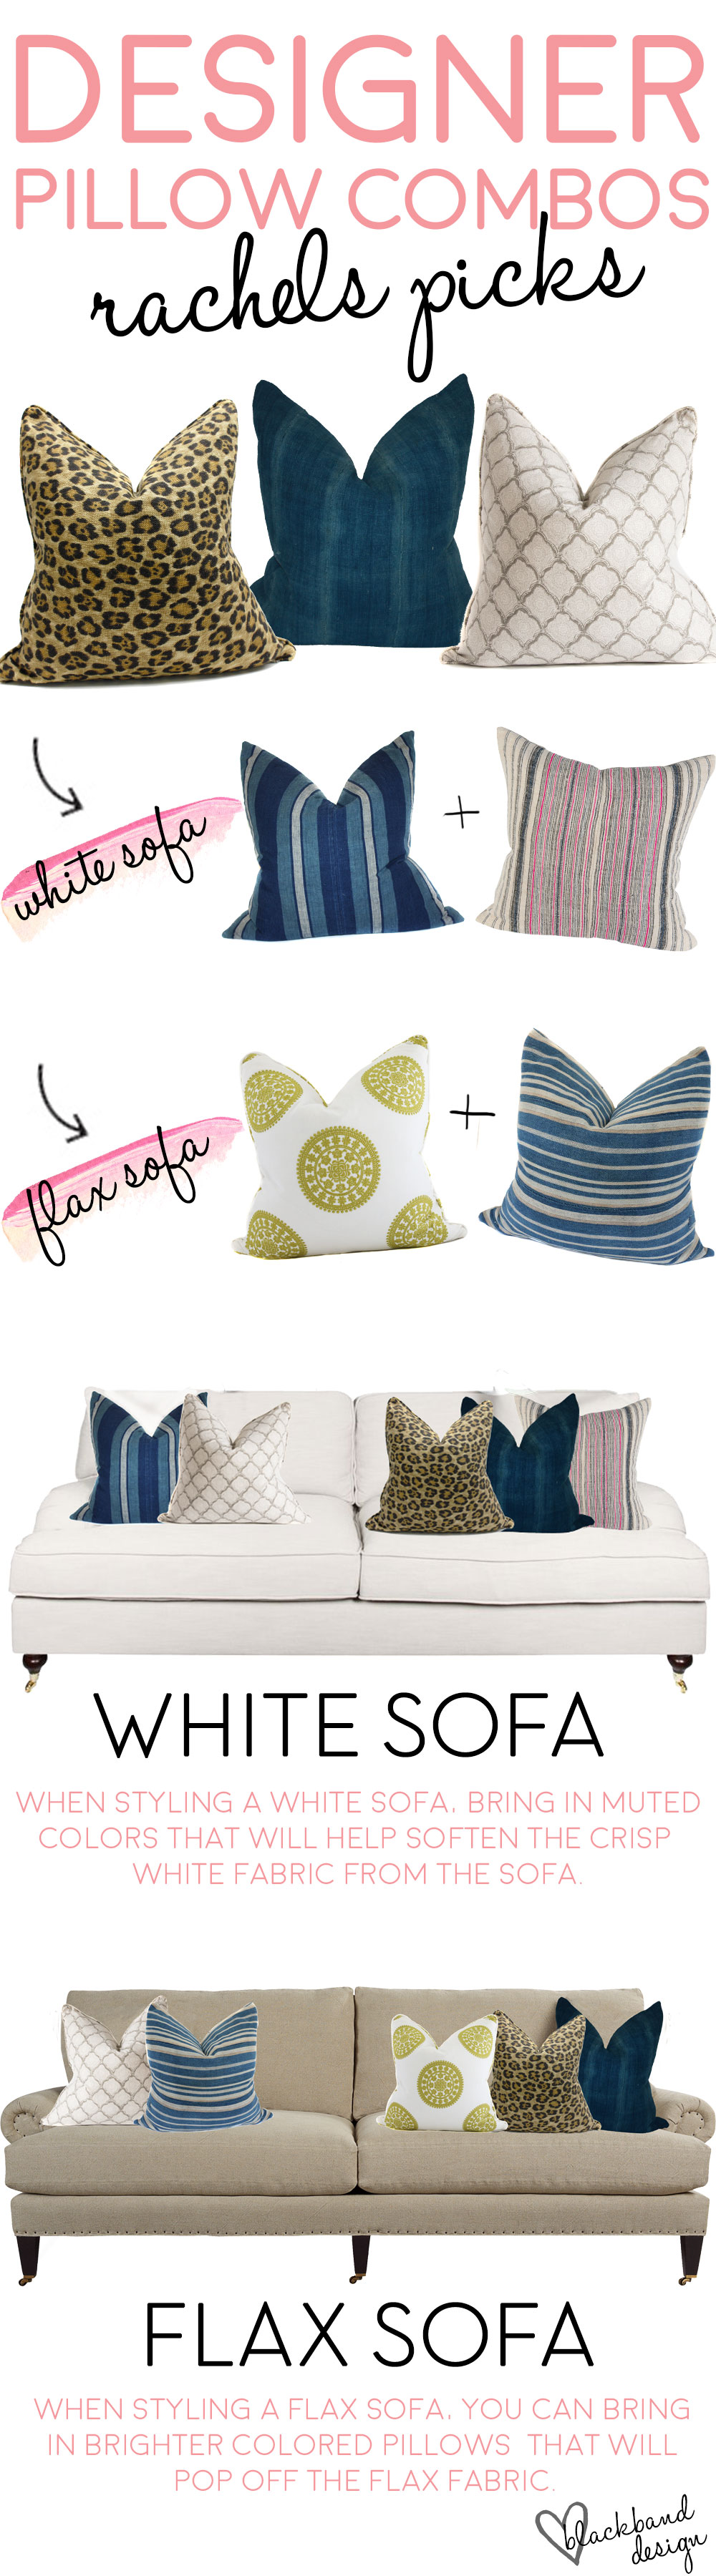 blackband_design_flax_and_white_sofa_pillow_combos